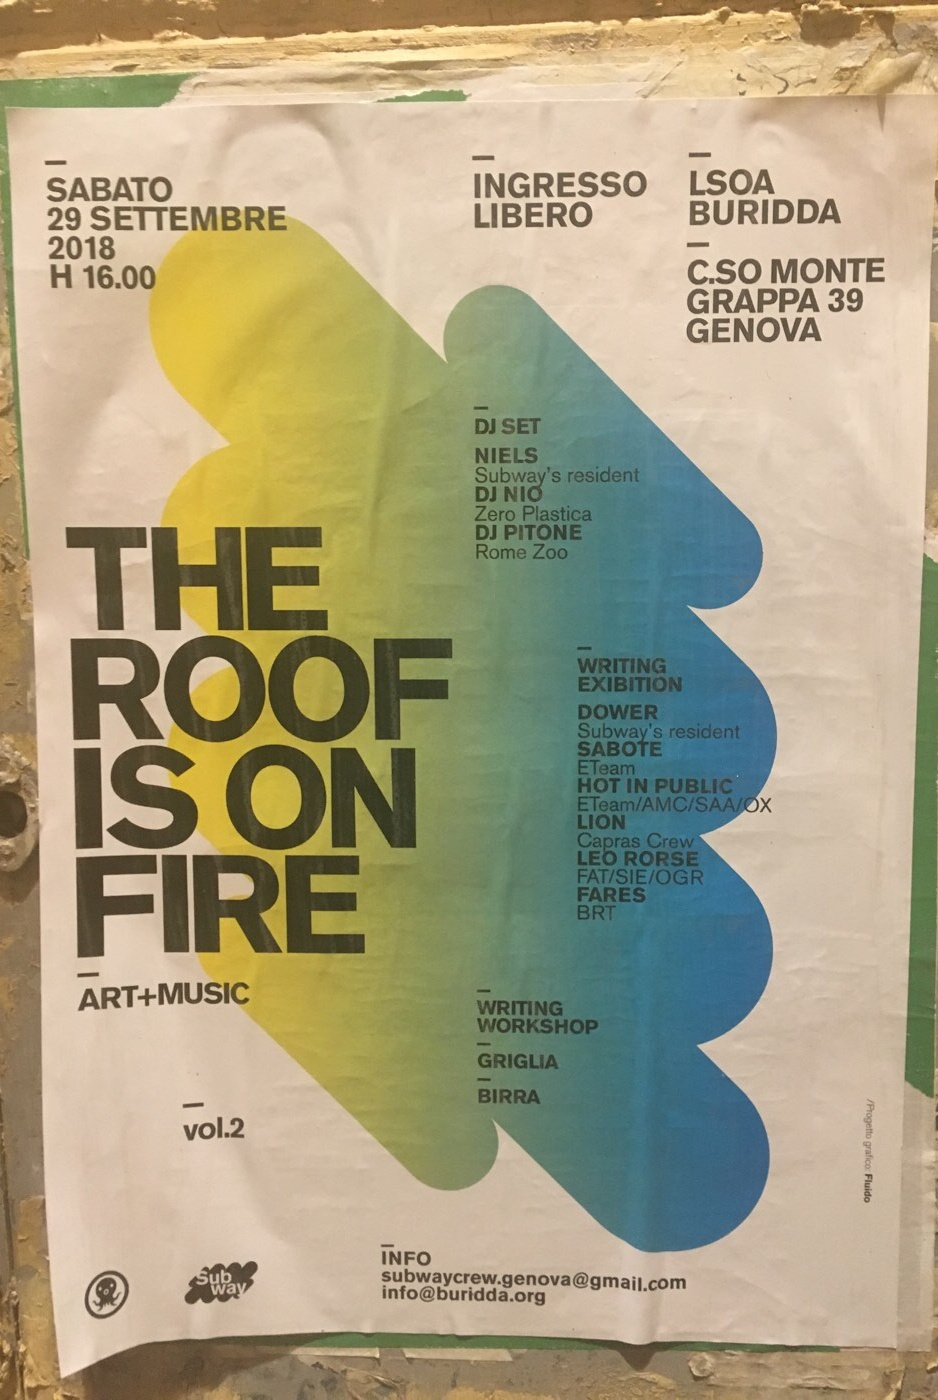 The Roof is on Fire LSOA Buridda Corso Monte Grappa 39, 16137 Genova Dal 29/09/2018 Al 29/09/2018 16:00 - 02:00